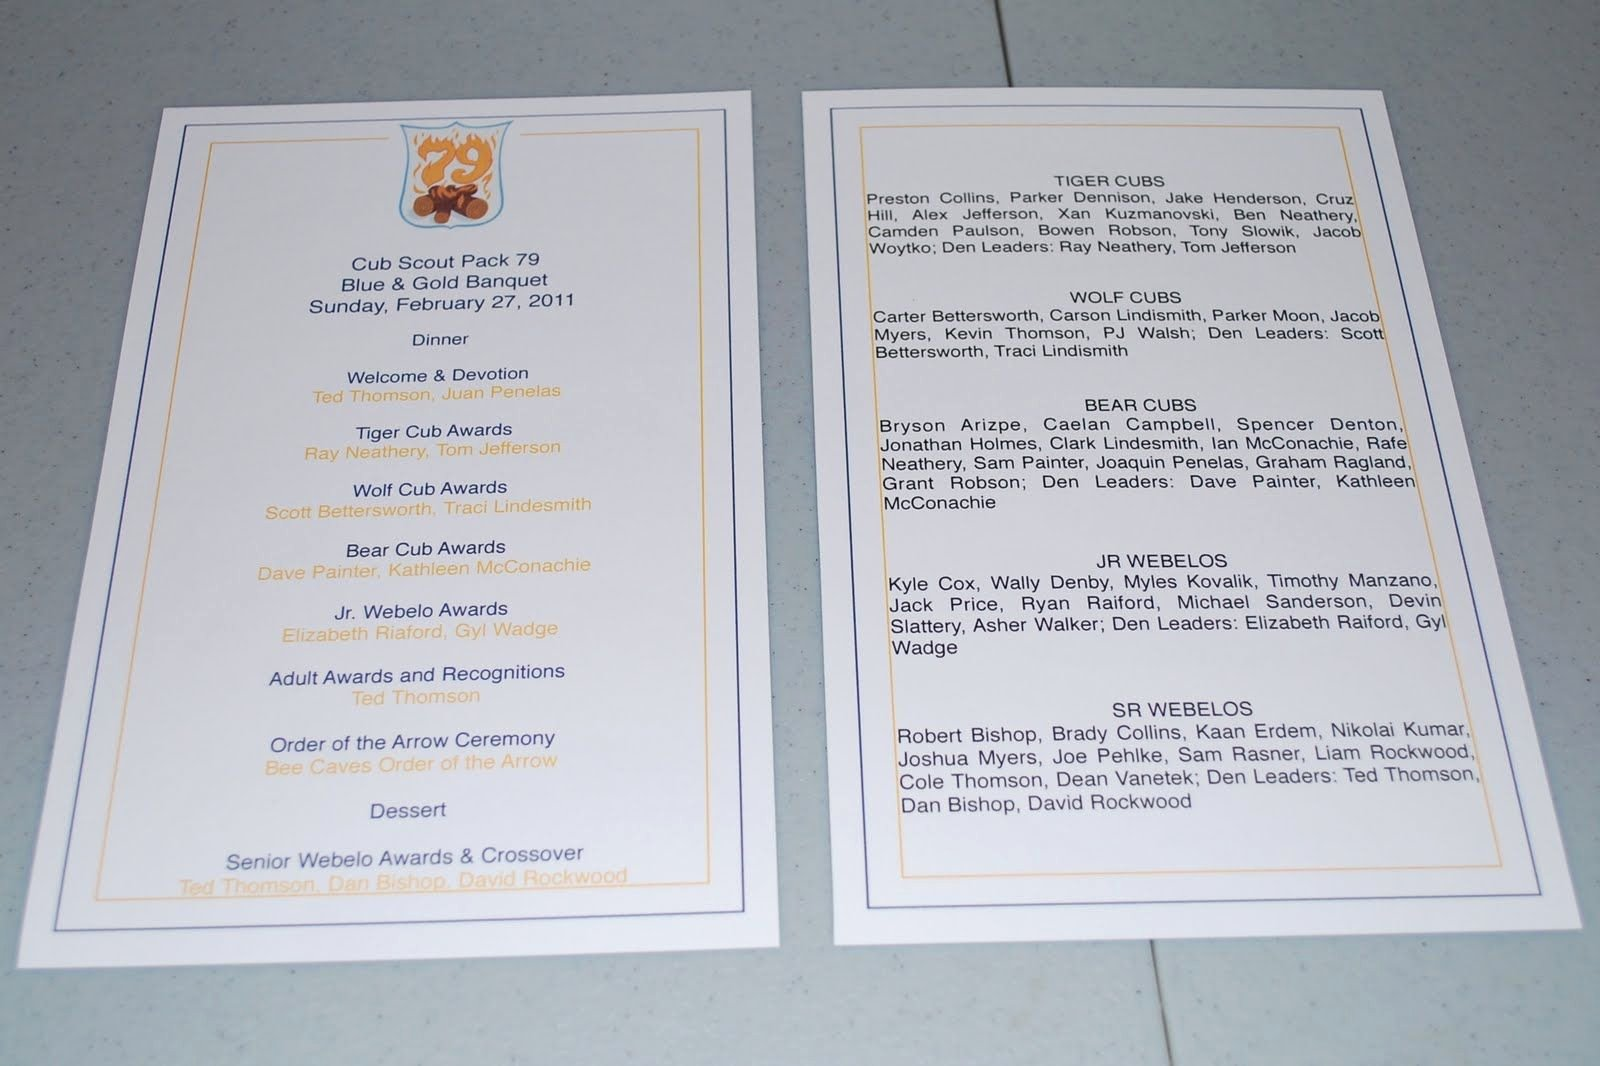 Awards Day Program Template New Blue and Gold Banquet Program Template